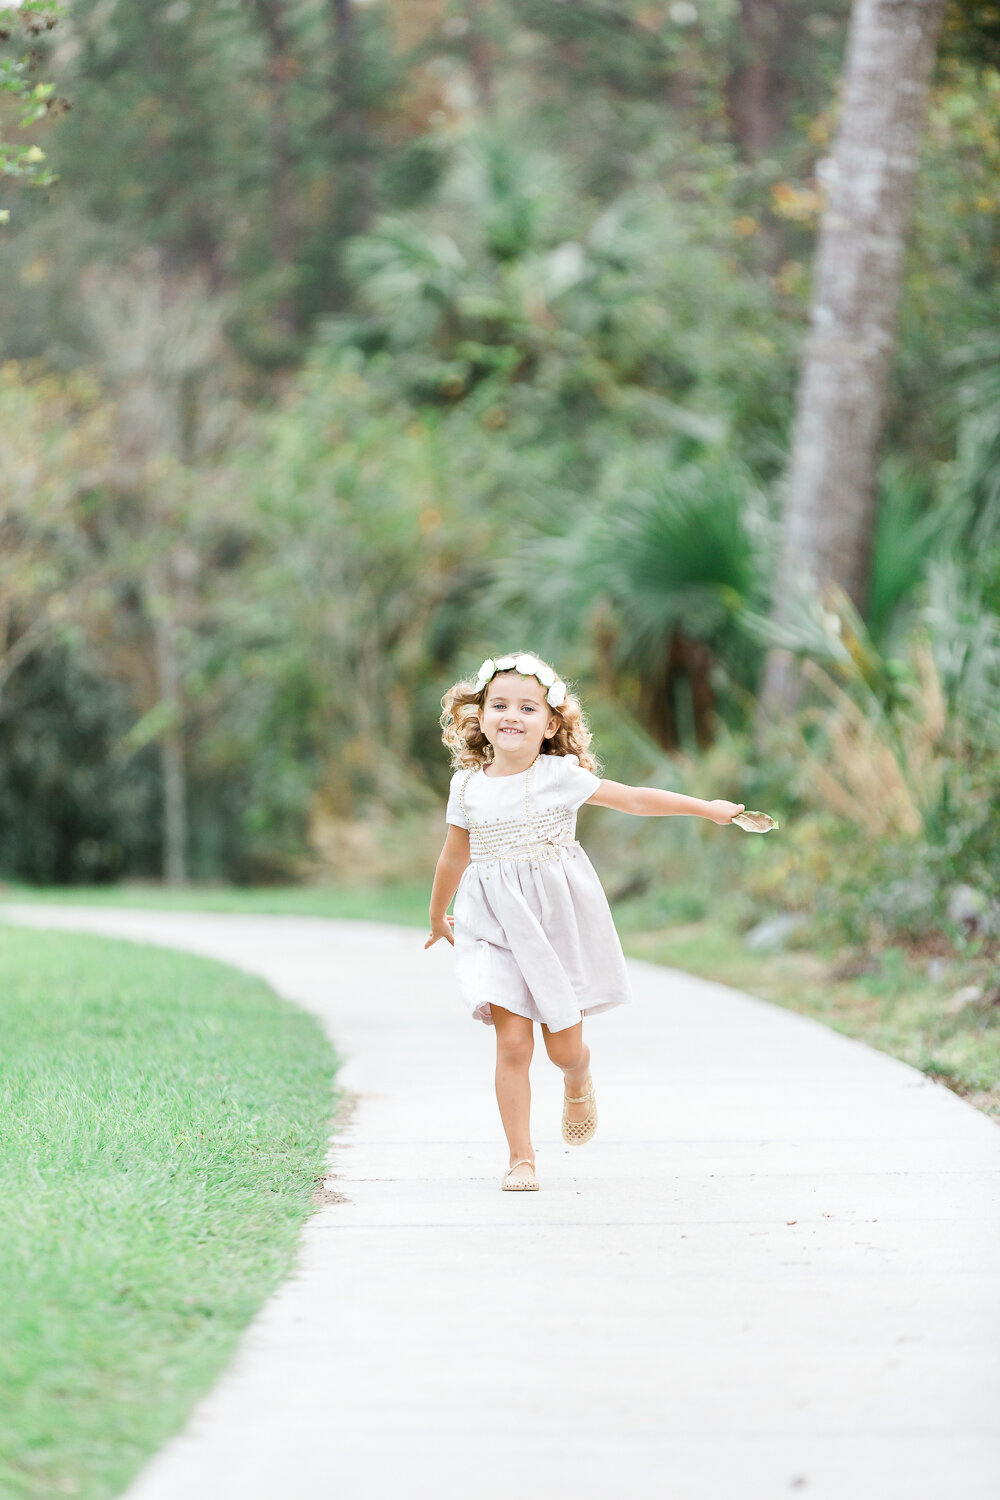 Nocatee's 20 mile park is on of the best photoshoot locations around Jacksonville and Ponte Vedra areas